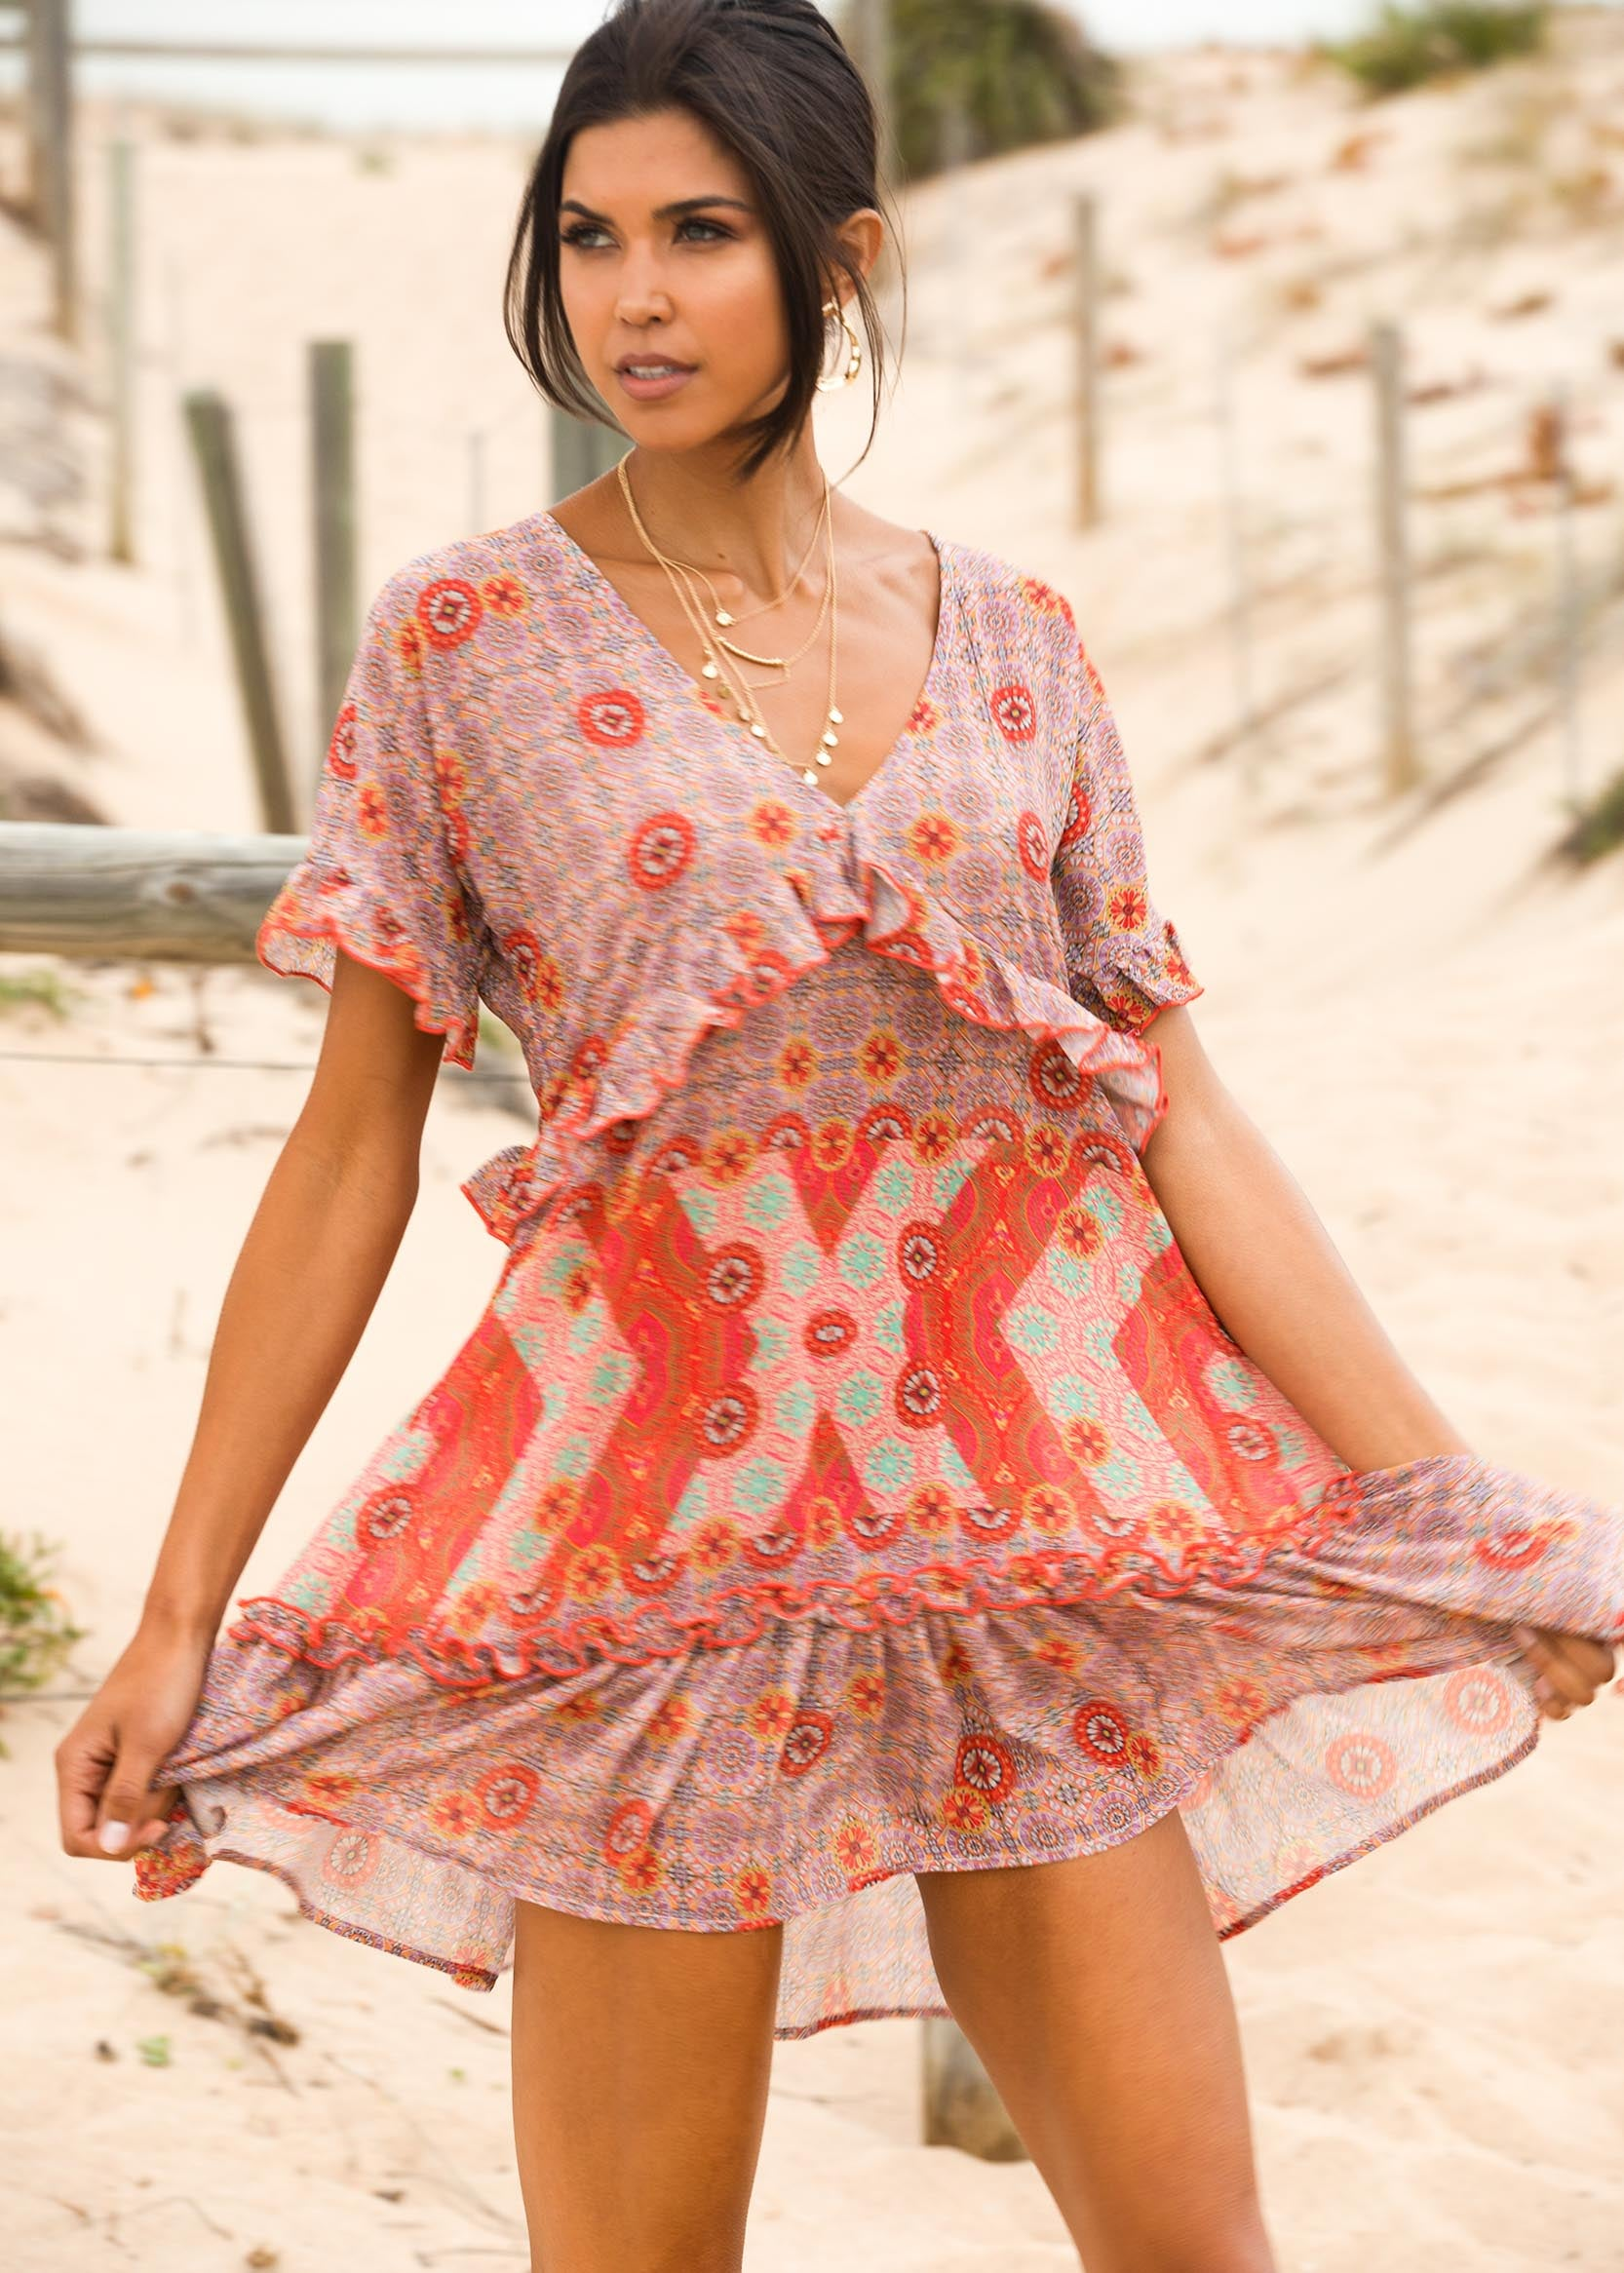 Hold Me Now Dress - Summer Spritz